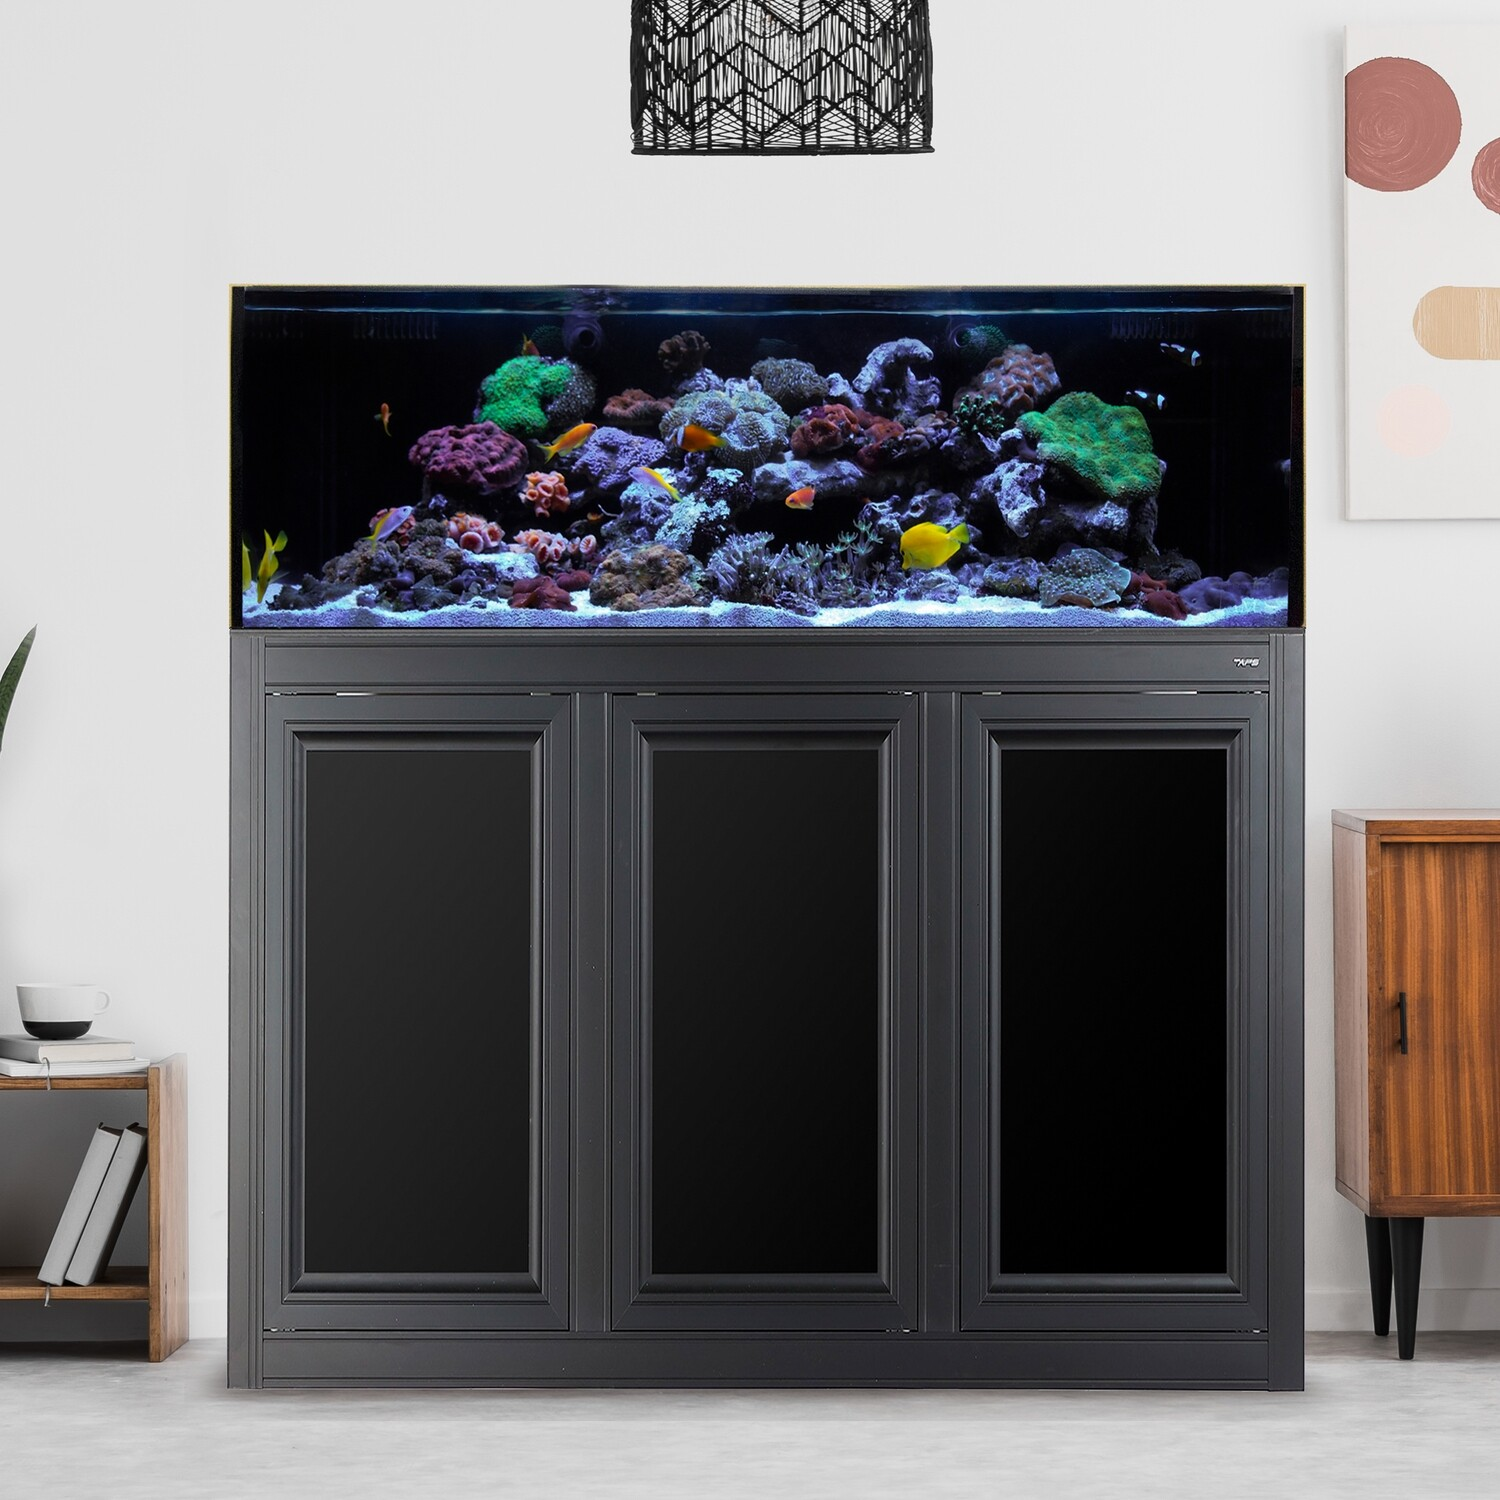 SR Pro 80 AIO Aquarium w/ APS Stand - Black